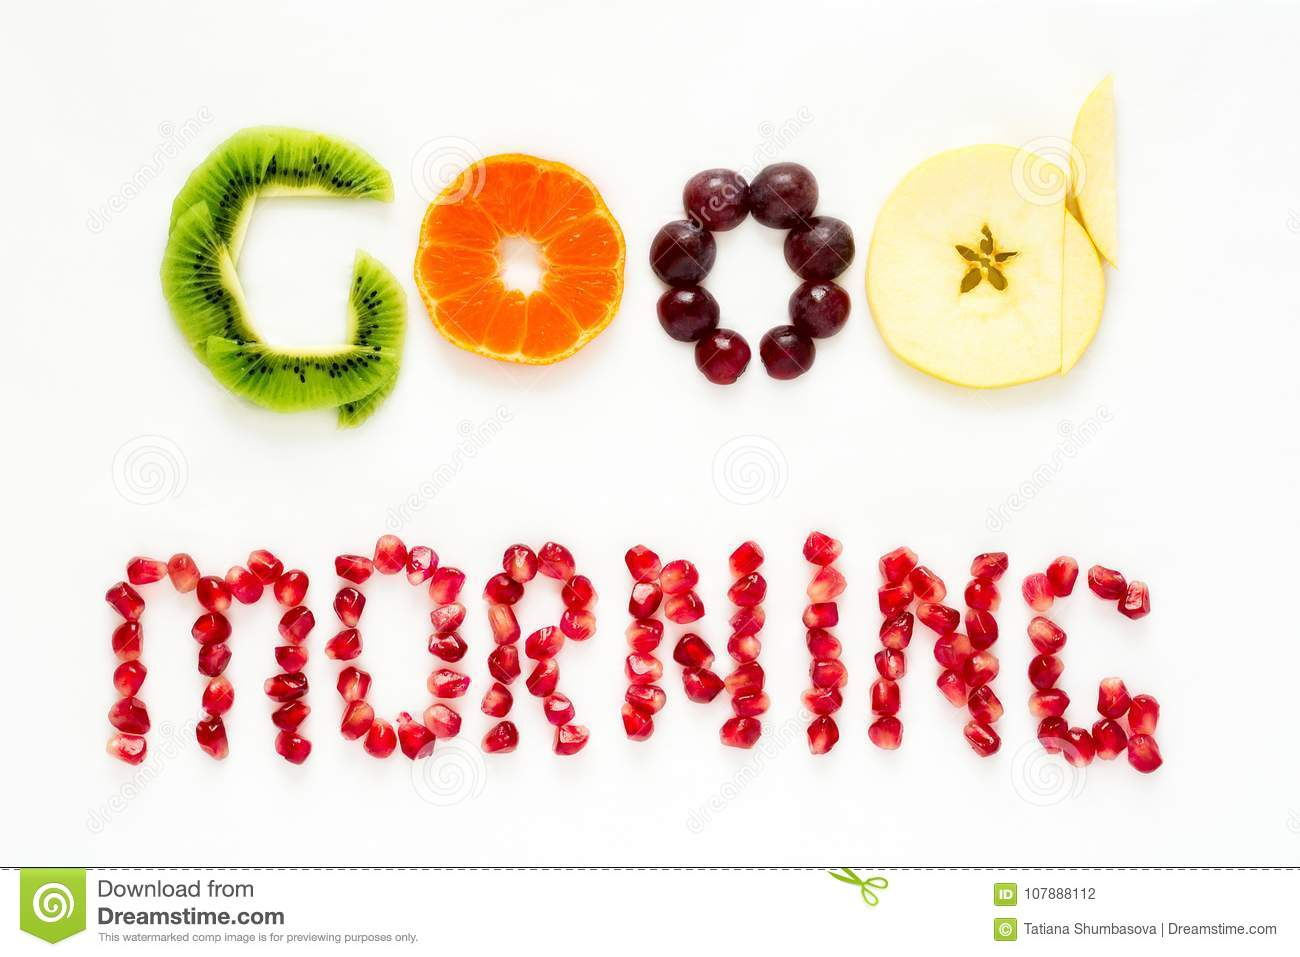 Good morning concept. `Good morning` words laid out with pieces of fruit and pomegranate seeds